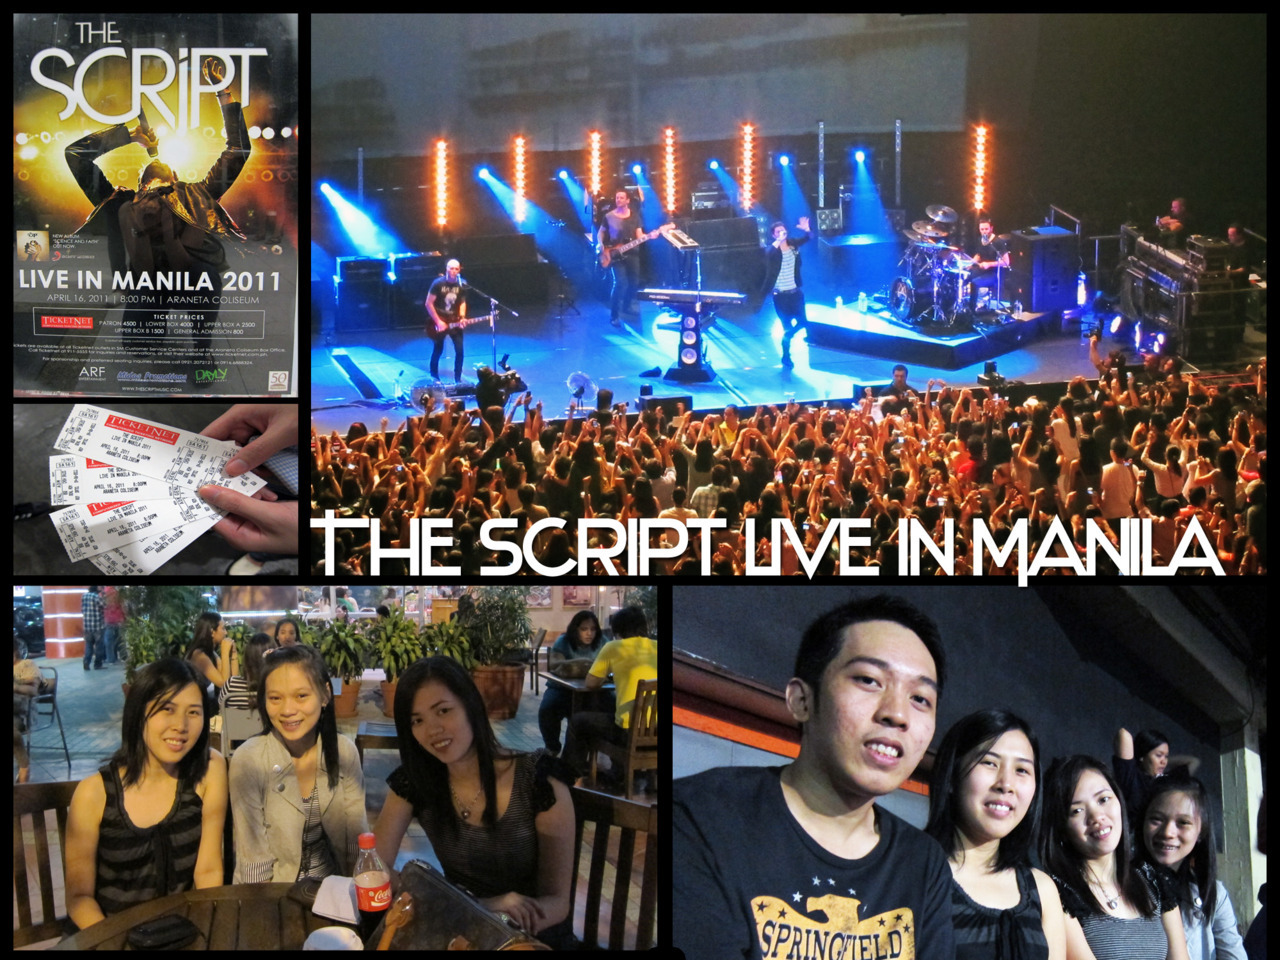 The Script Live in Manila It was the first concert i ever attended and I thank Kuya Ogie for this. :DDD I am speechless up 'til now. hahaha. The Script = Love